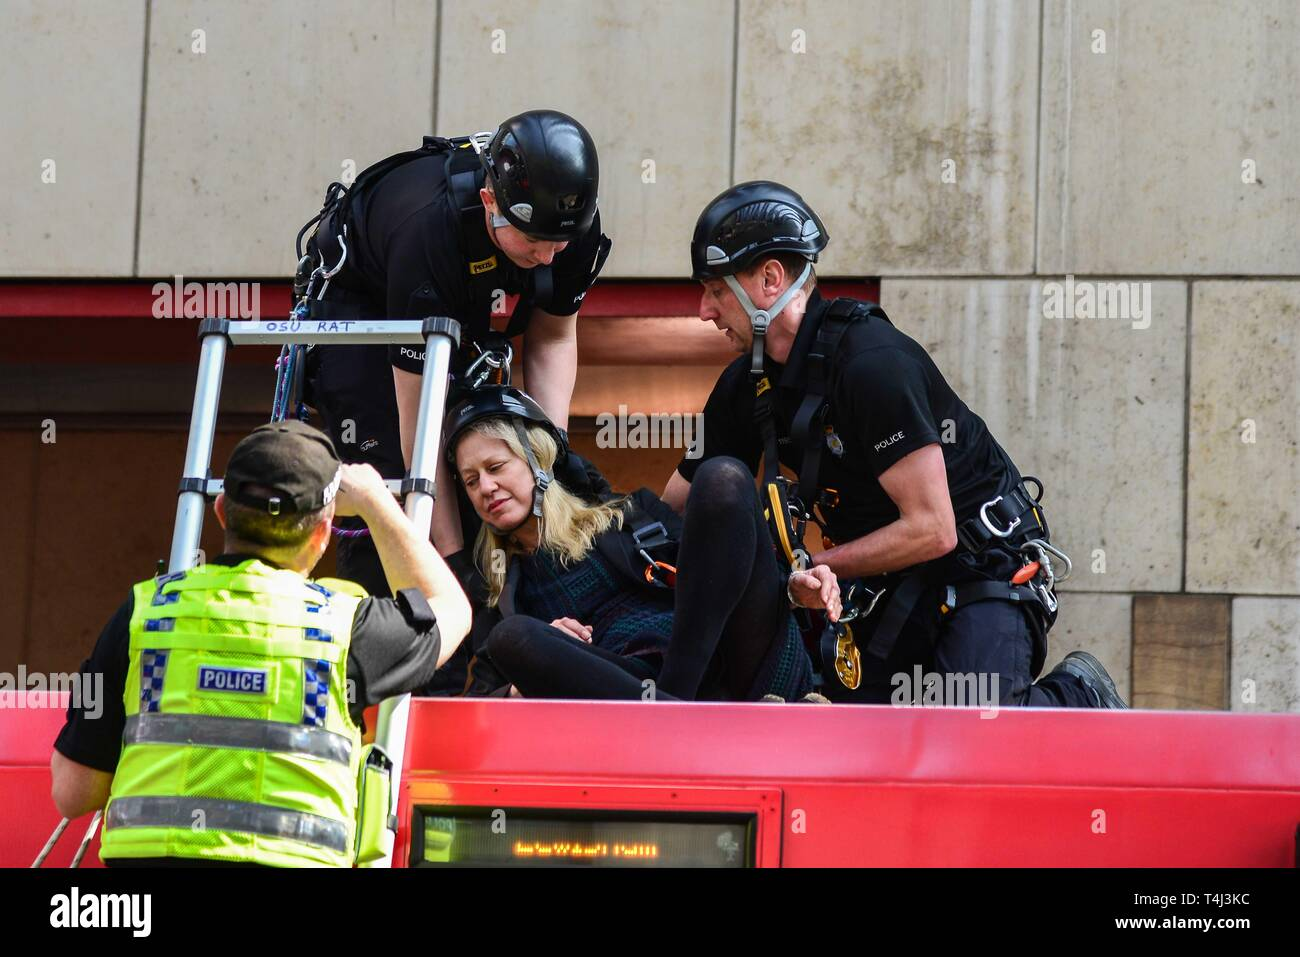 London, UK. 17th Apr, 2019. Police officers place a protester who glued herself to the roof of a DLR train carriage into a safety harness at Canary Wharf station in London, UK on April 17, 2019. This is part of on going climate change protests in London. Credit: Claire Dohert/Alamy Live News Stock Photo